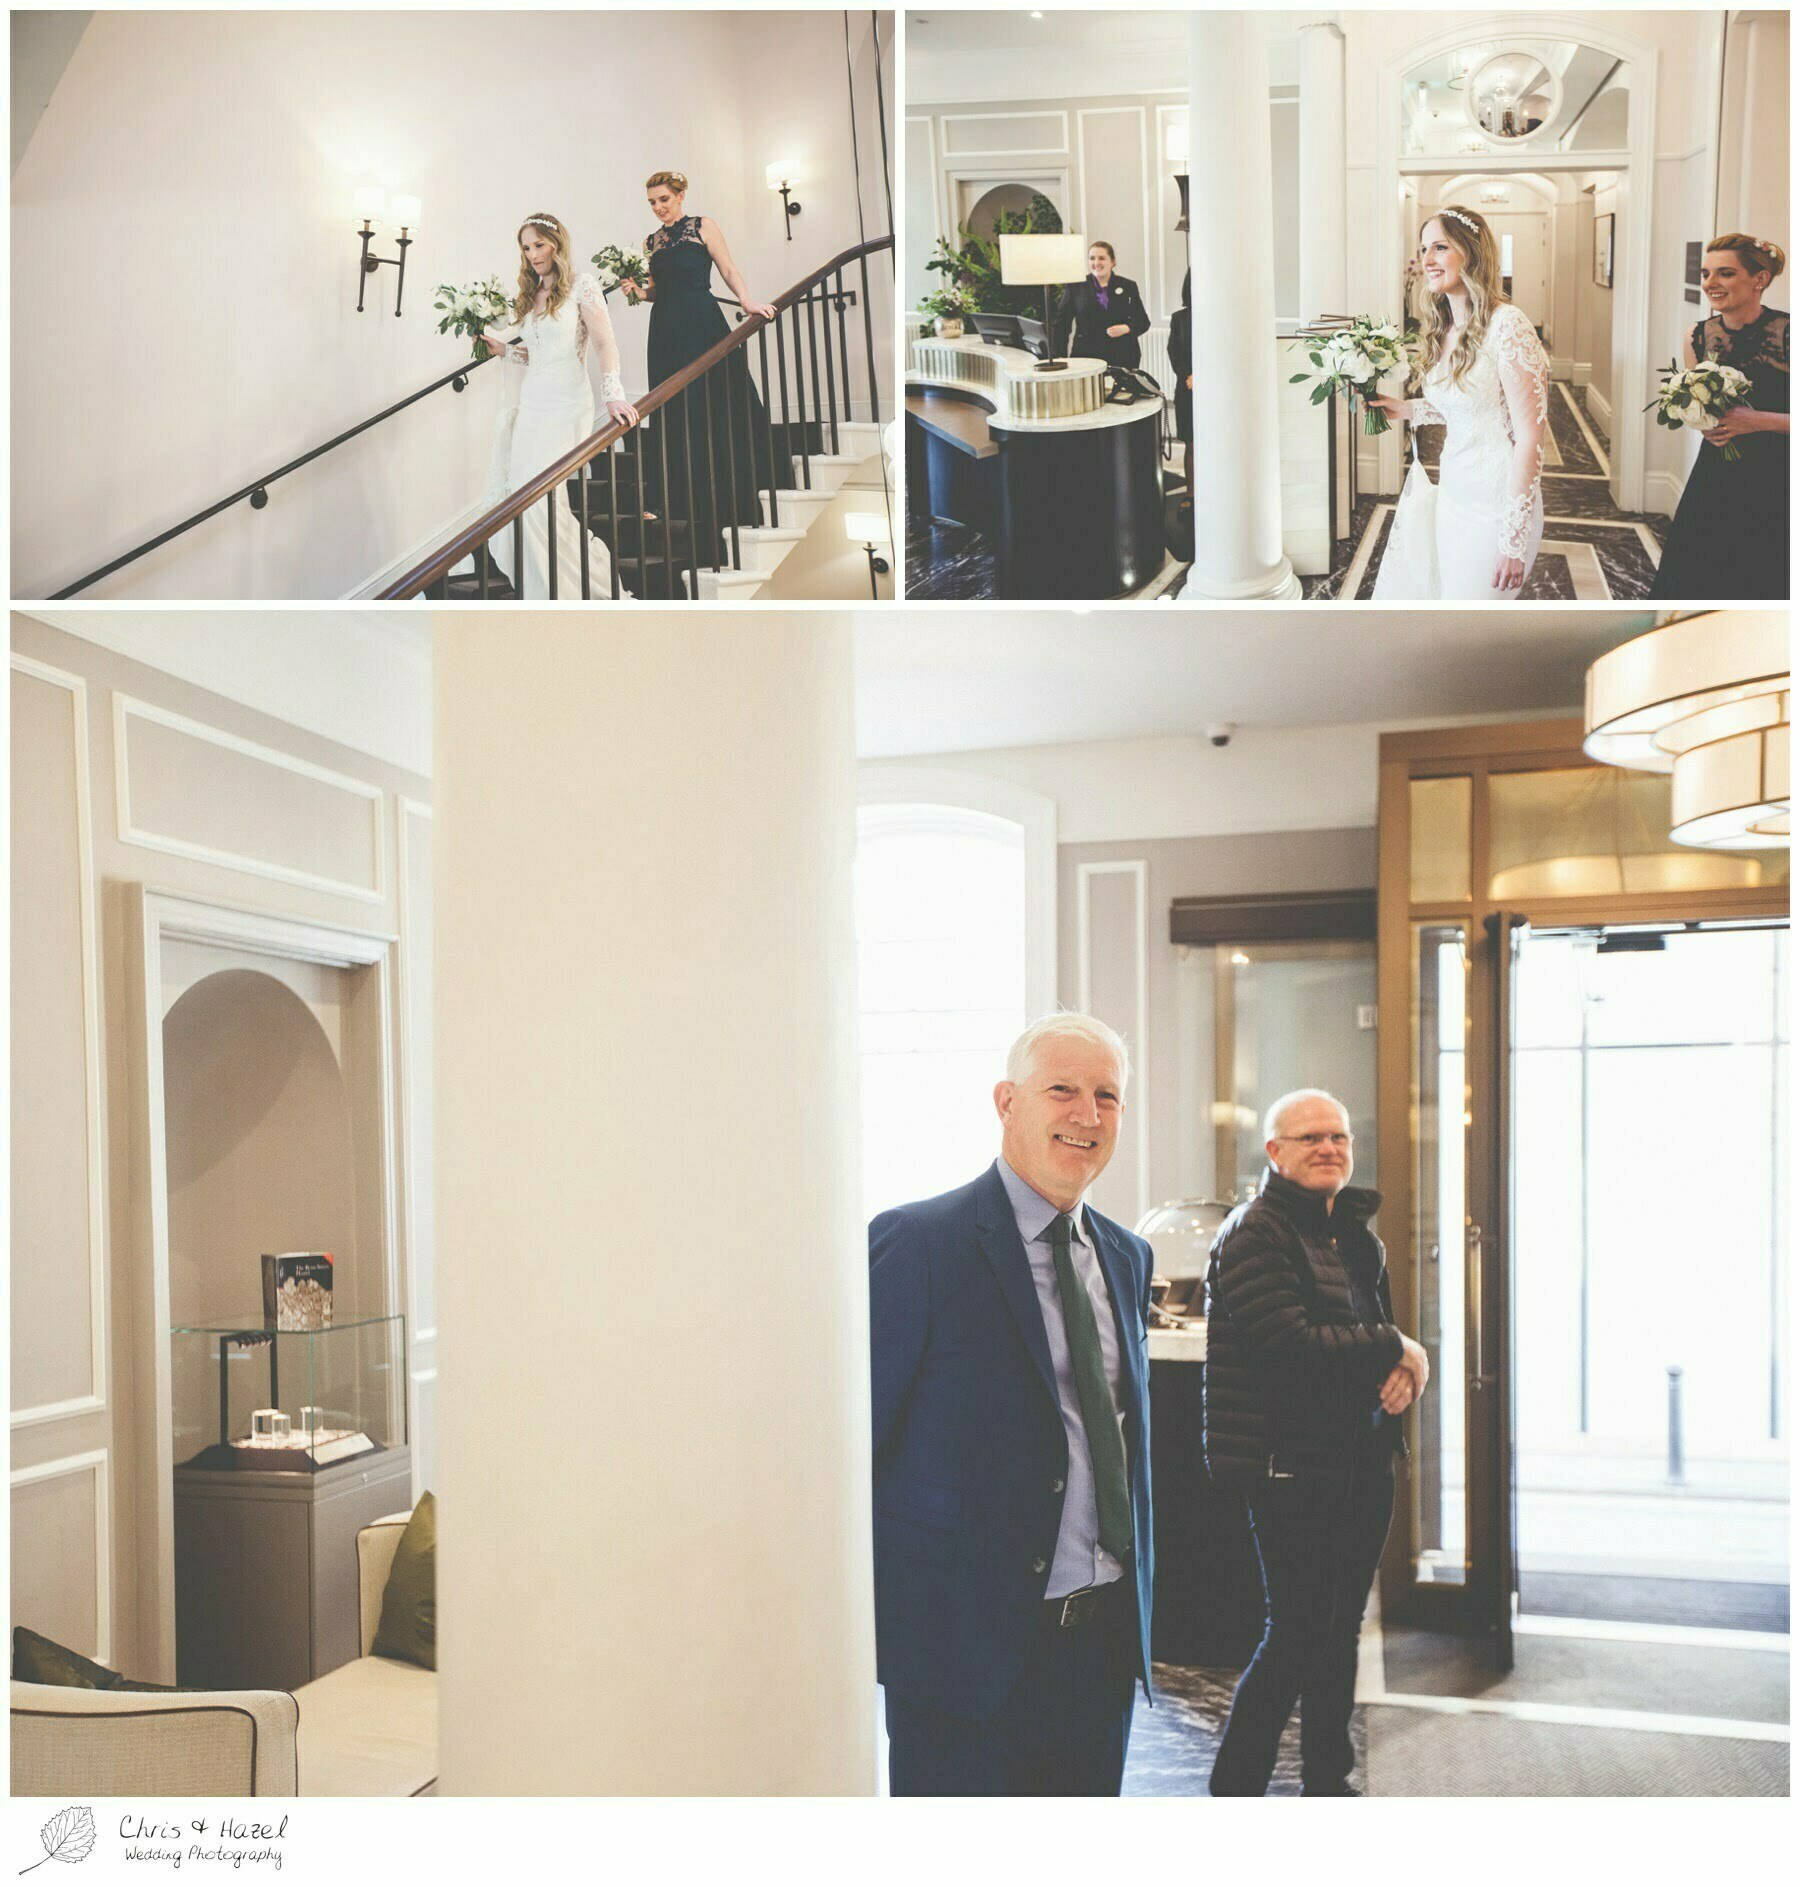 Father of Bride seeing Bride for first time, Wedding preparations, The Gainsborough Bath Spa hotel, Gainsborough Hotel Bath, documentary wedding photography, Chris and Hazel Wedding Photography Bath, Andy Frost Sian Upson